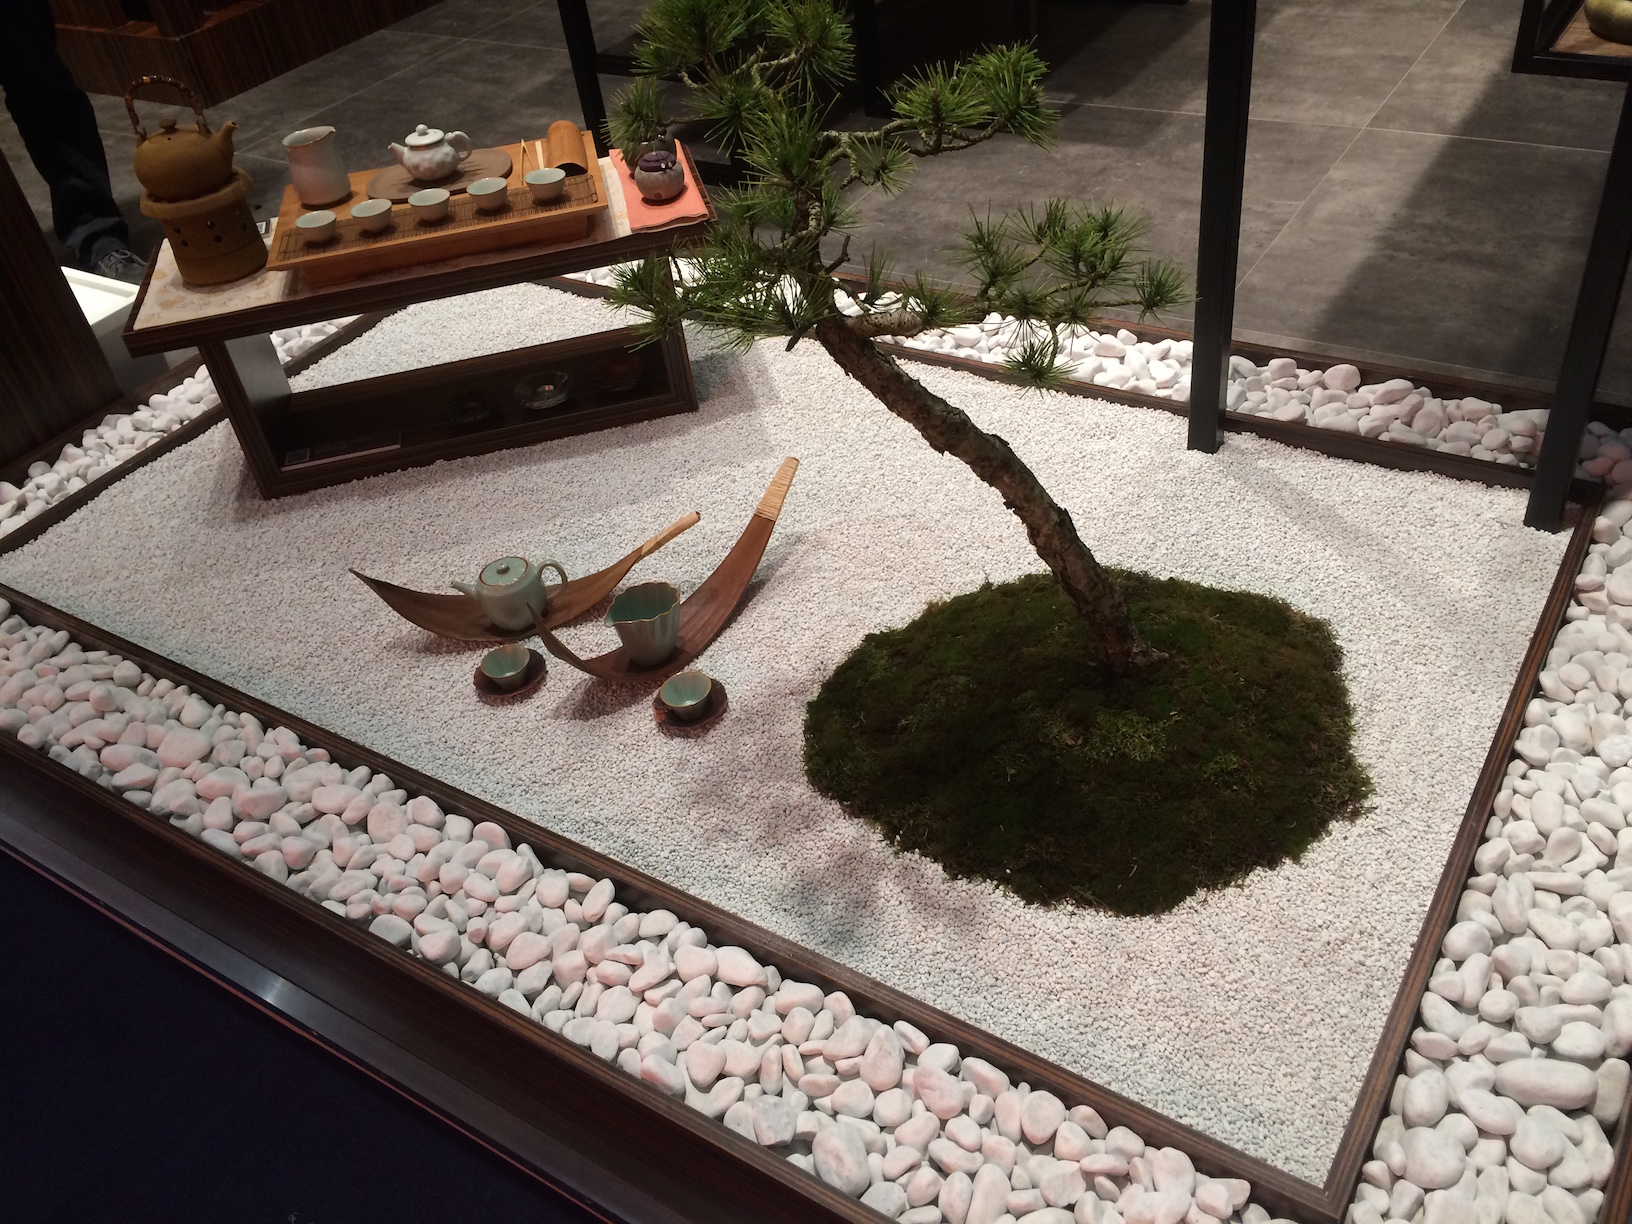 On y tait le salon des arts de la table de francfort - Petit jardin zen interieur la rochelle ...